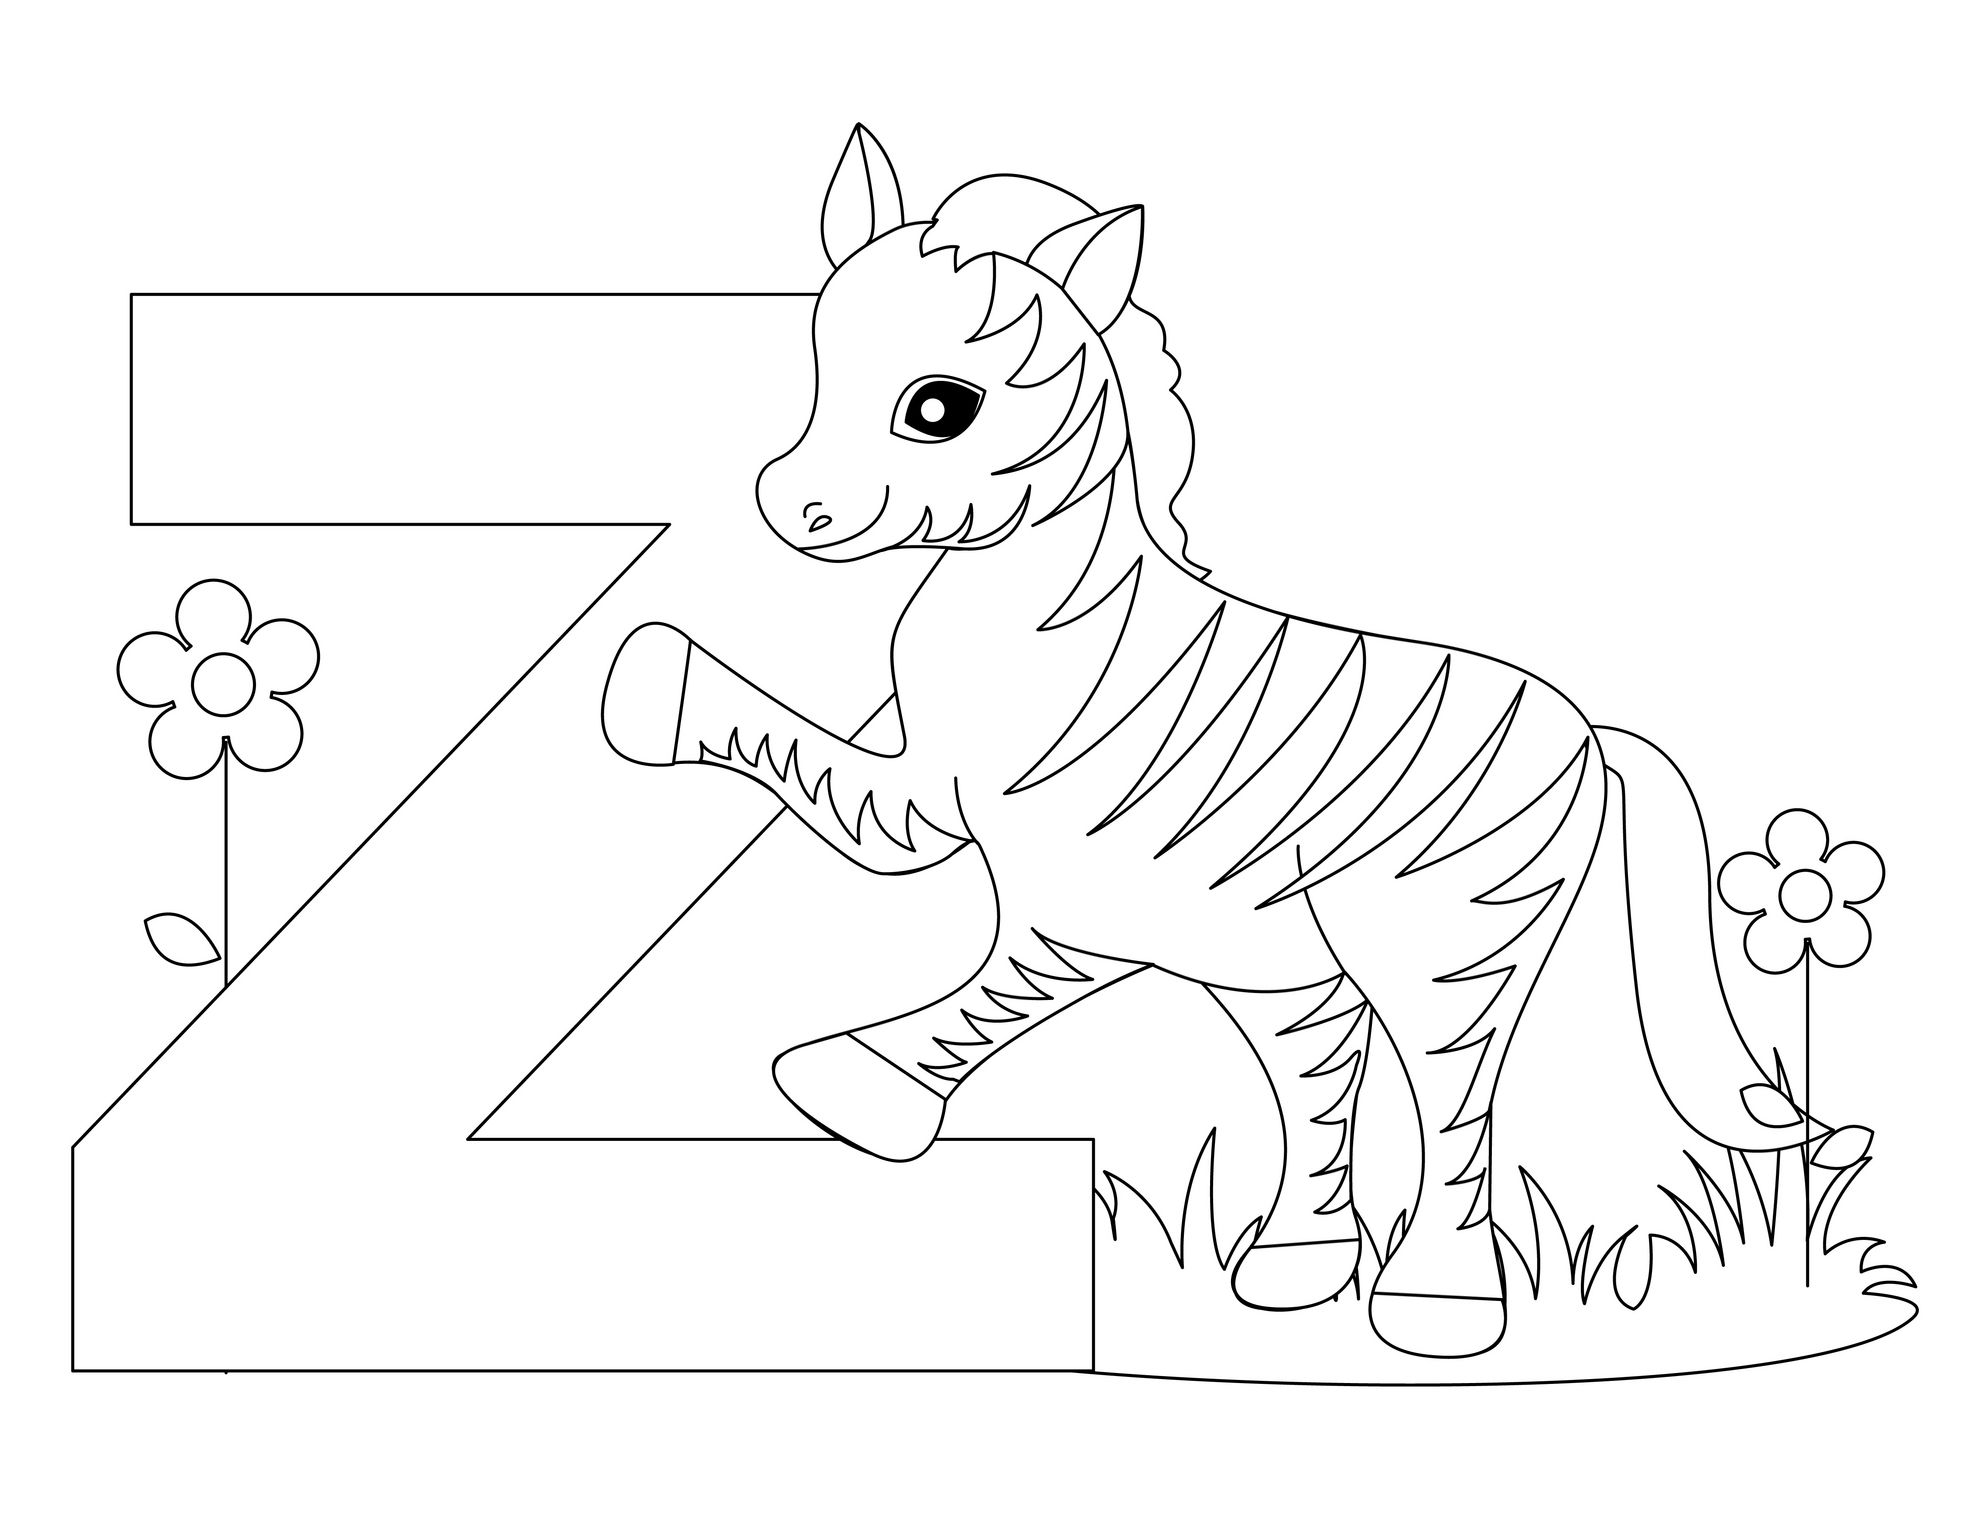 Free zebra coloring pages to print - Printable Animal Alphabet Worksheets Letter Z For Zebra Printable Coloring Pages For Kids